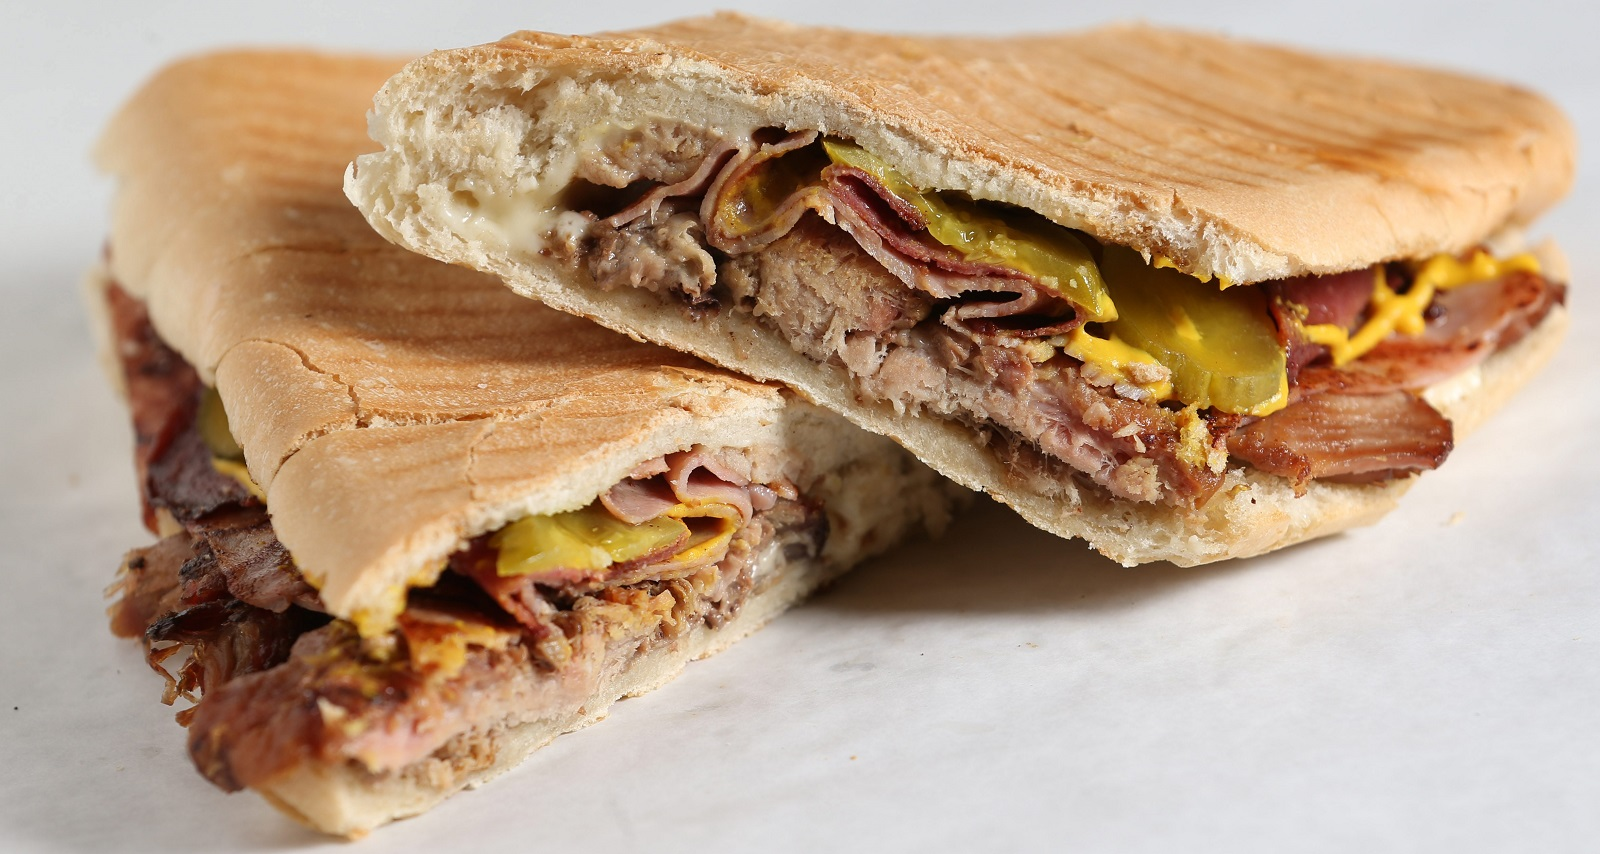 La Flor Bakery's Cubano is made with Cuban bread and filled with roasted pork, ham, salami, pickles, white cheese and mustard and toasted in a panini press. (Sharon Cantillon/Buffalo News)